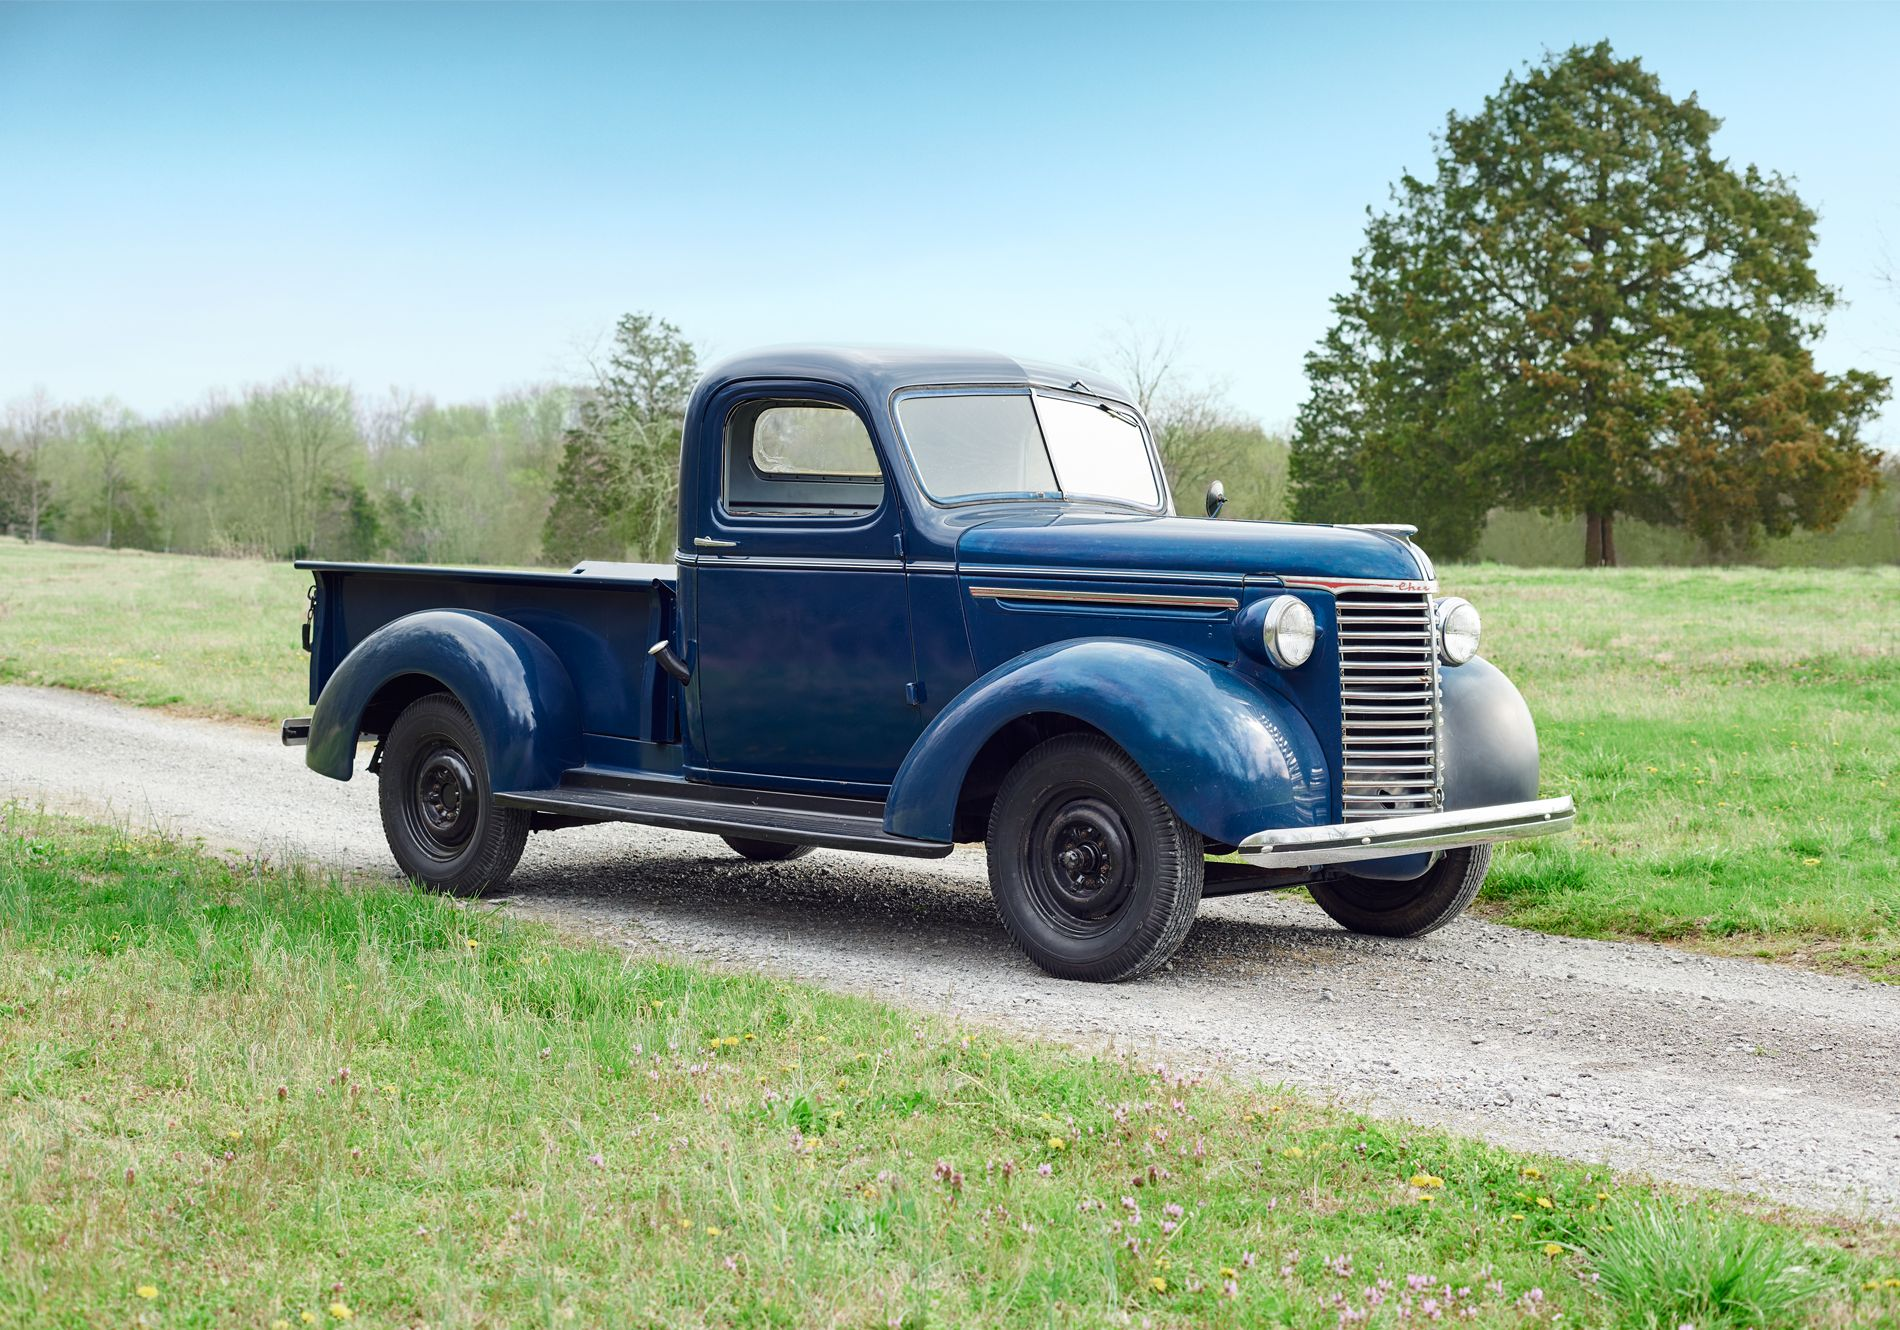 Classic American Pickup Trucks - History of Pickup Trucks